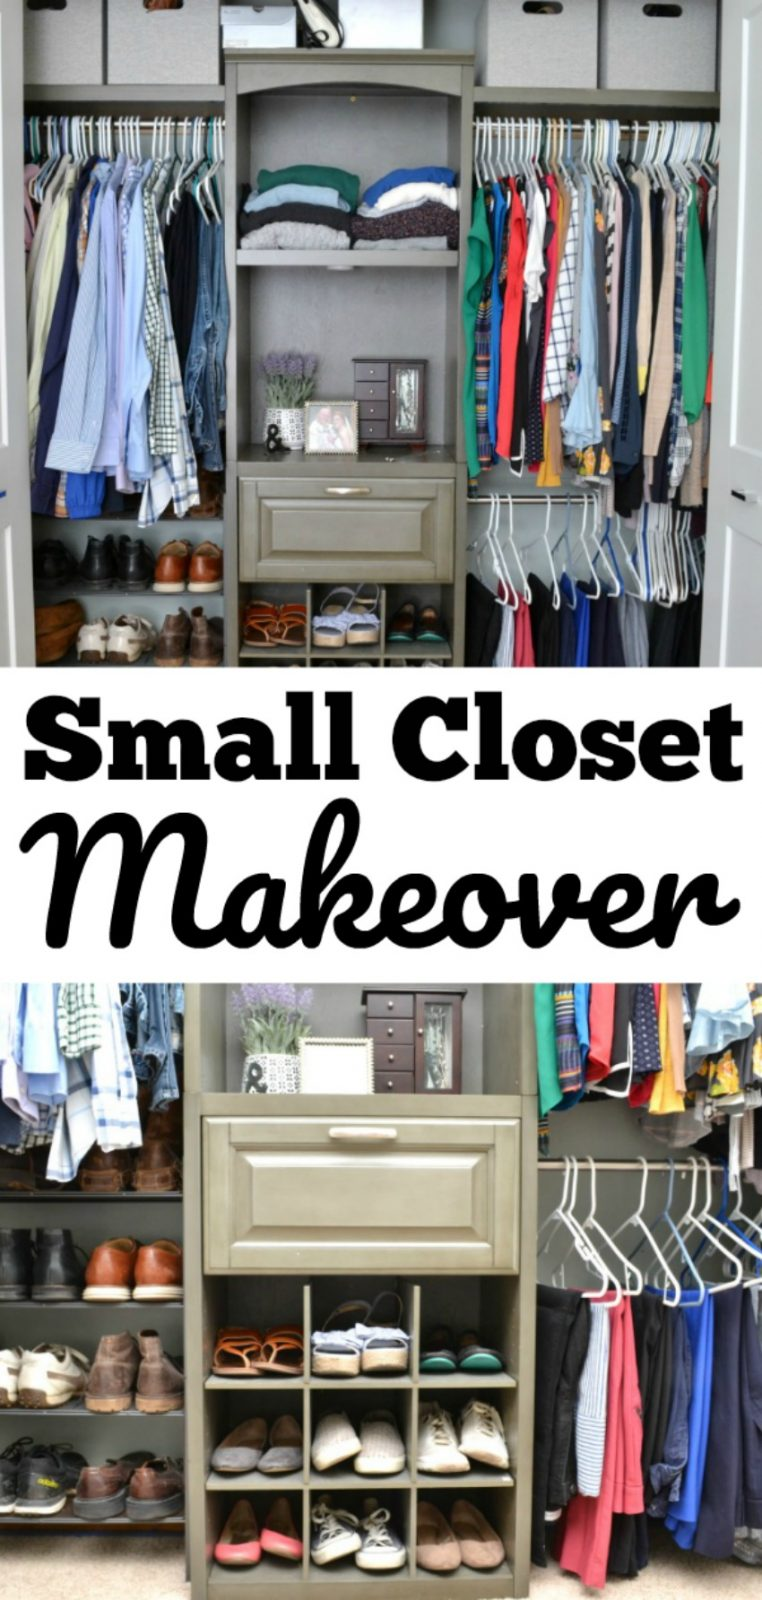 Small Closet Makeover Ideas